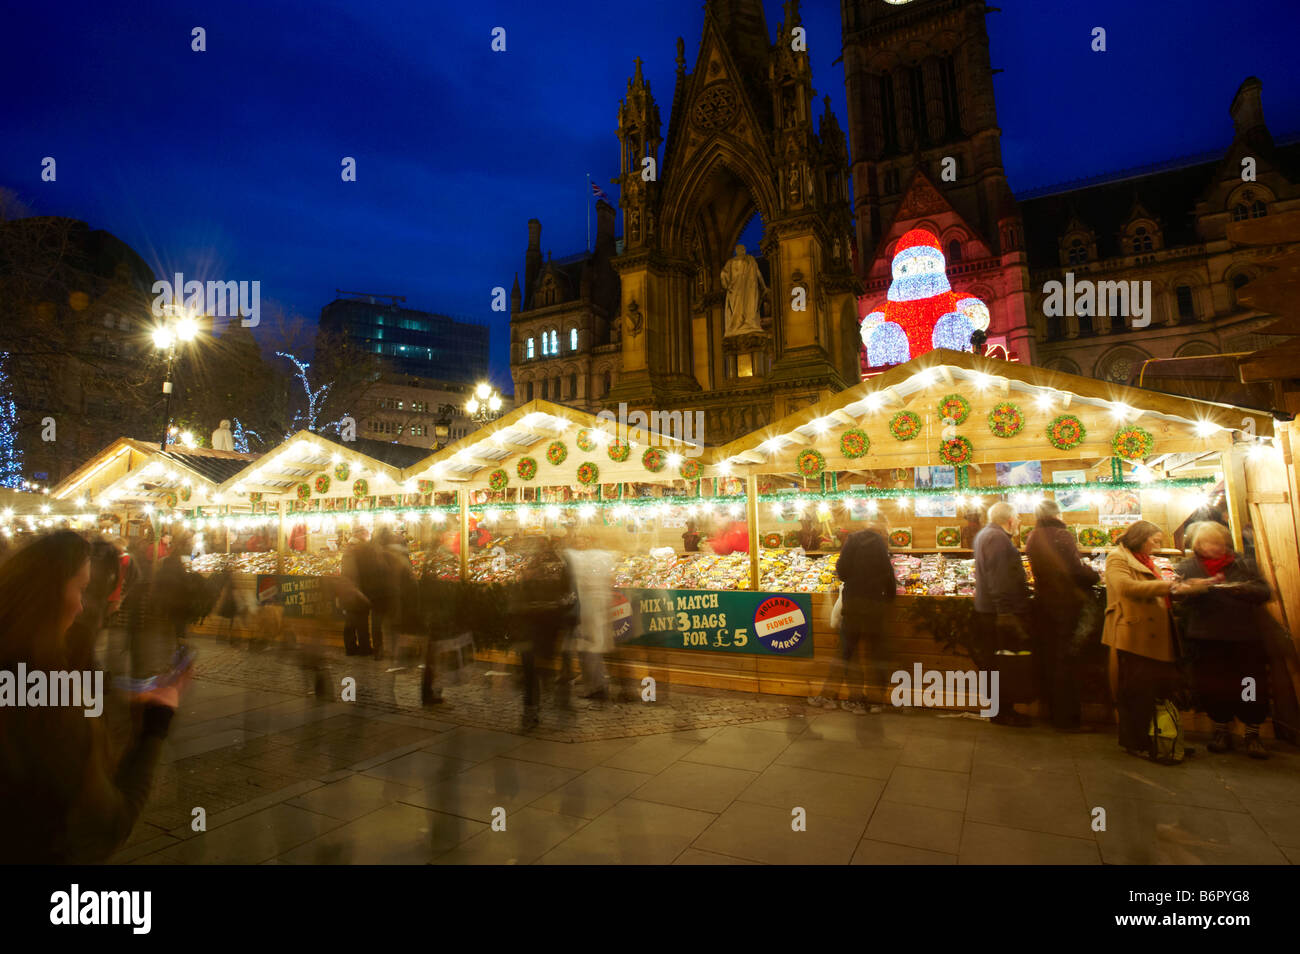 The Christmas Markets Manchester - Stock Image